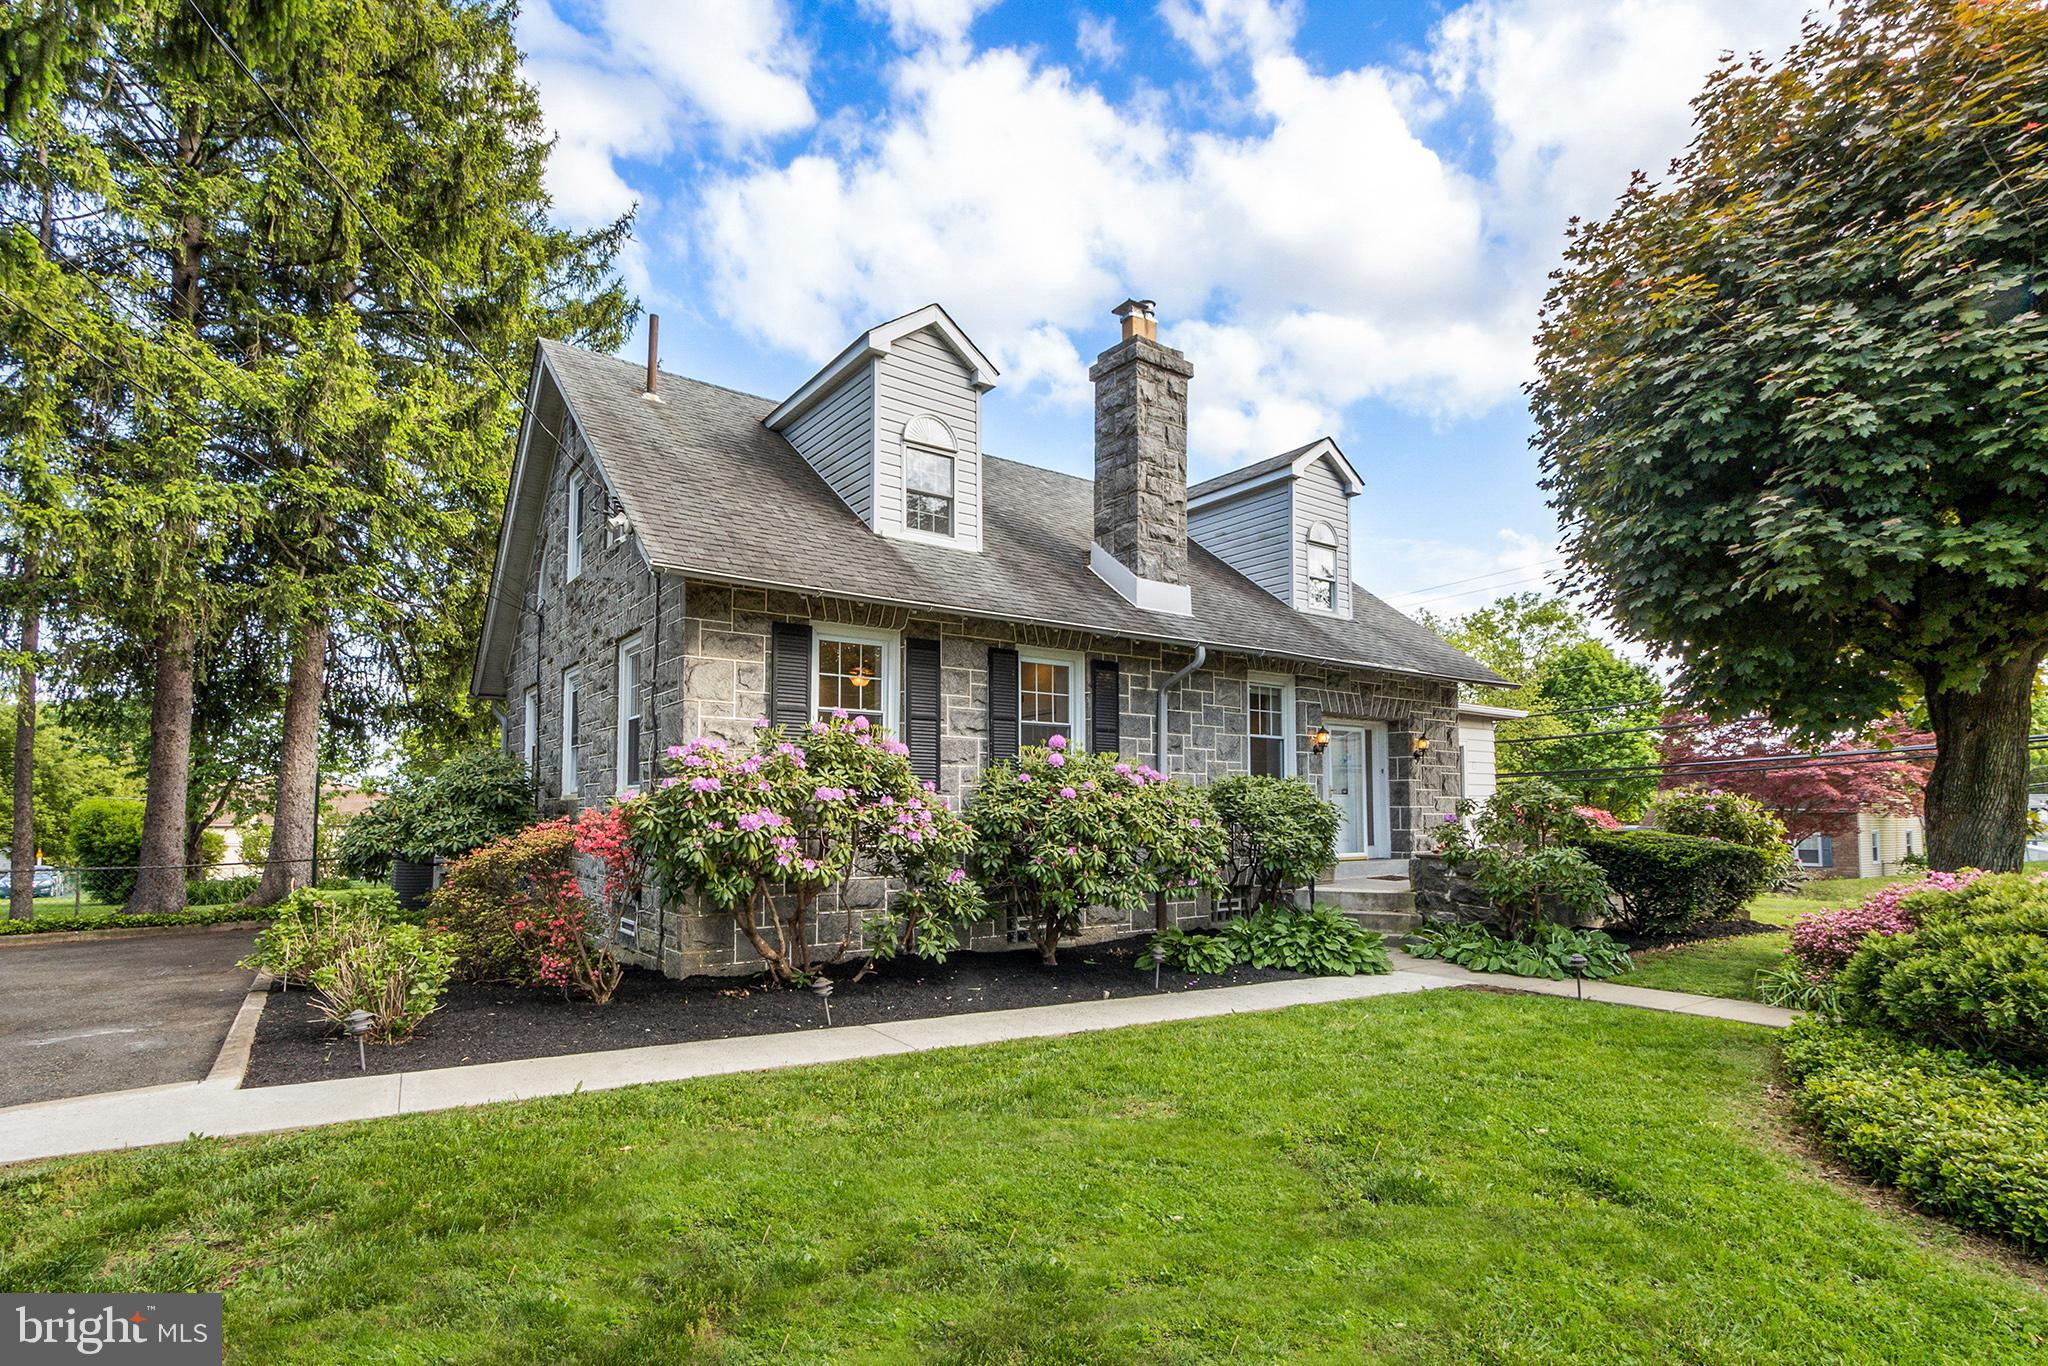 517 W Moreland Road, Willow Grove, PA 19090